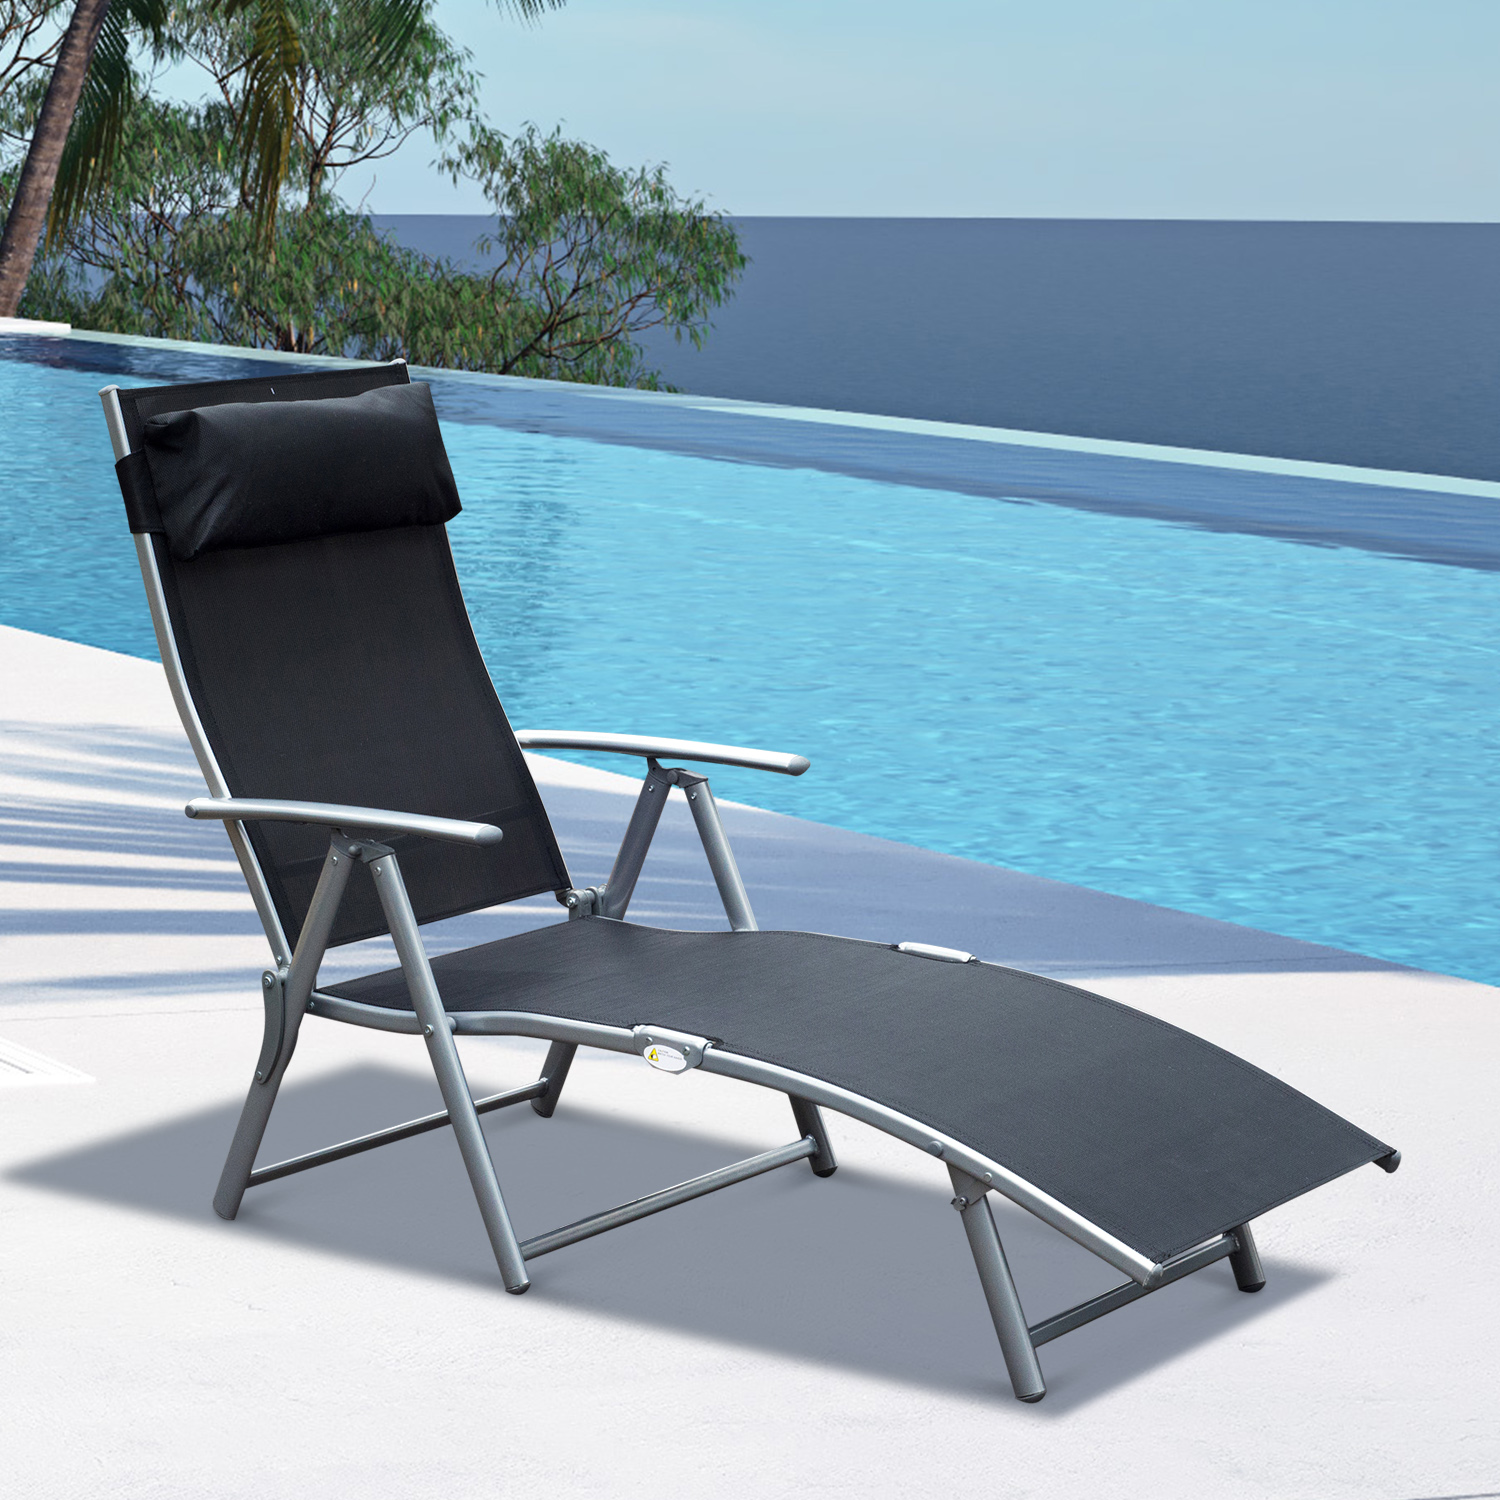 Outdoor Chaise Lounge Chaise Lounge Chair Folding Pool Beach Yard Adjustable